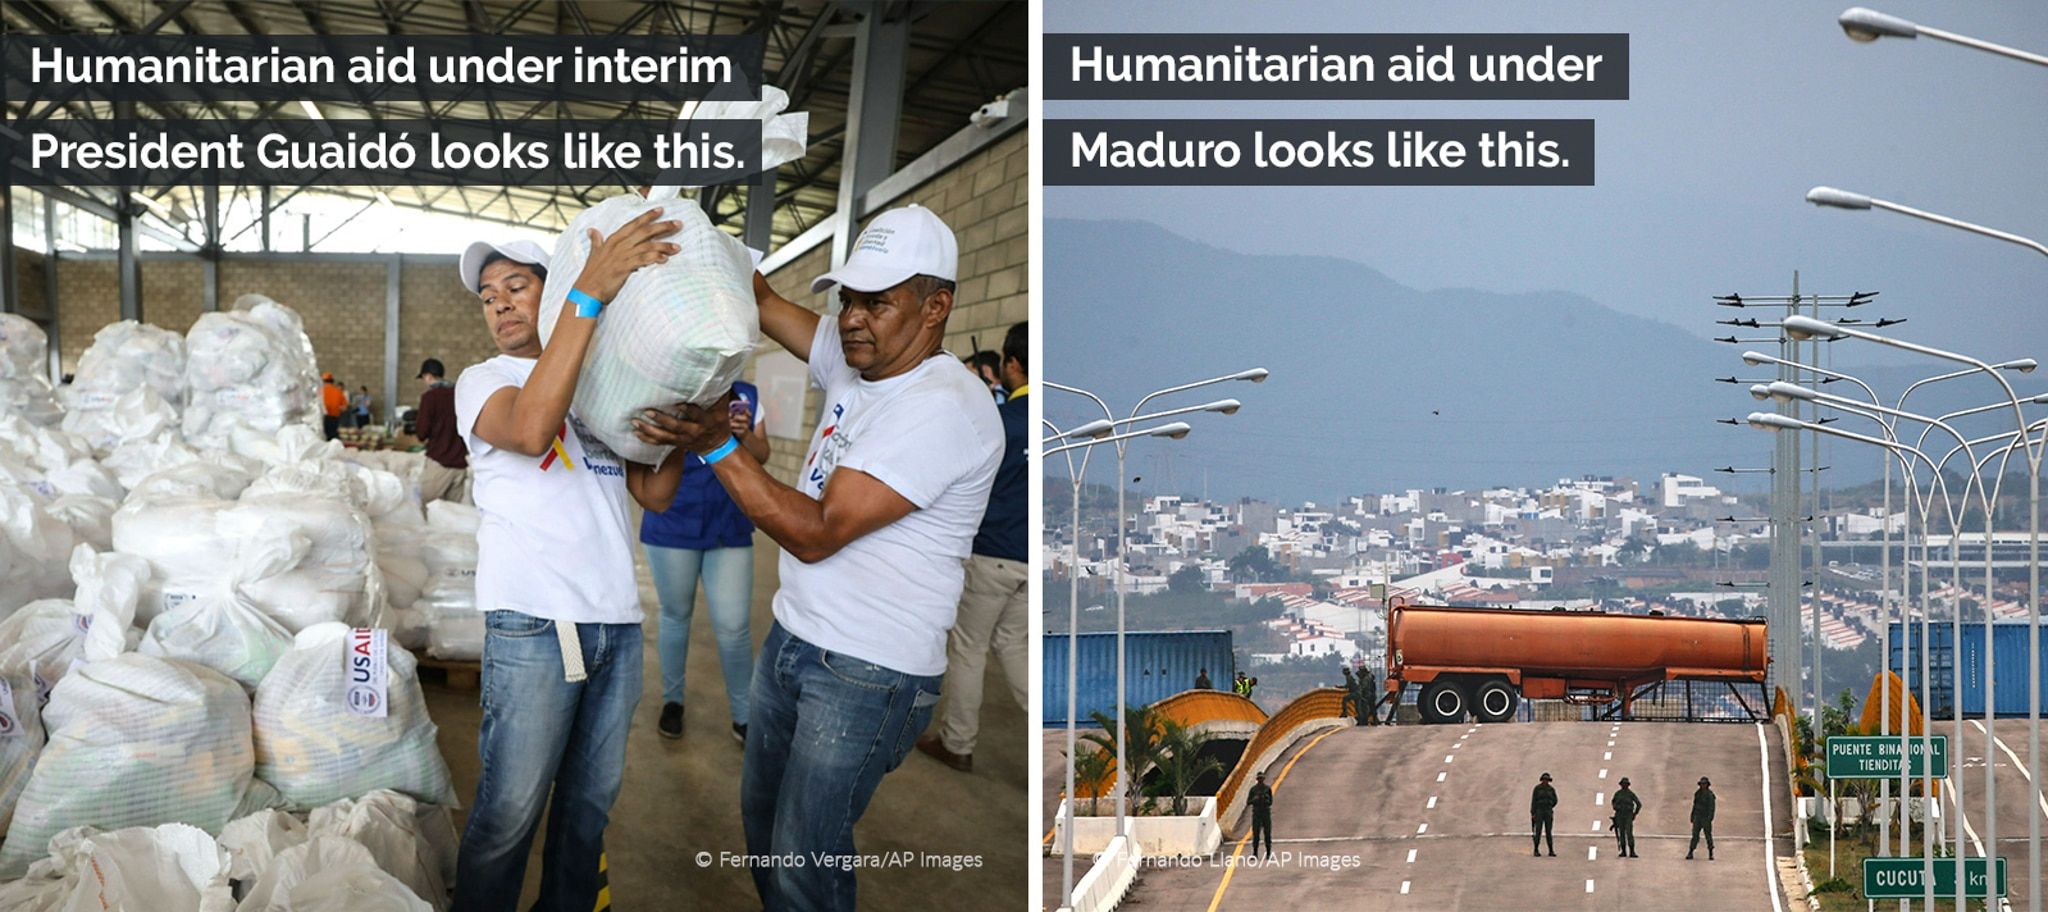 Compilation with men loading bags (© Fernando Vergara) and trucks blocking highway (© Fernando Llano/AP), with text overlaid comparing aid under Guaidó and Maduro governments